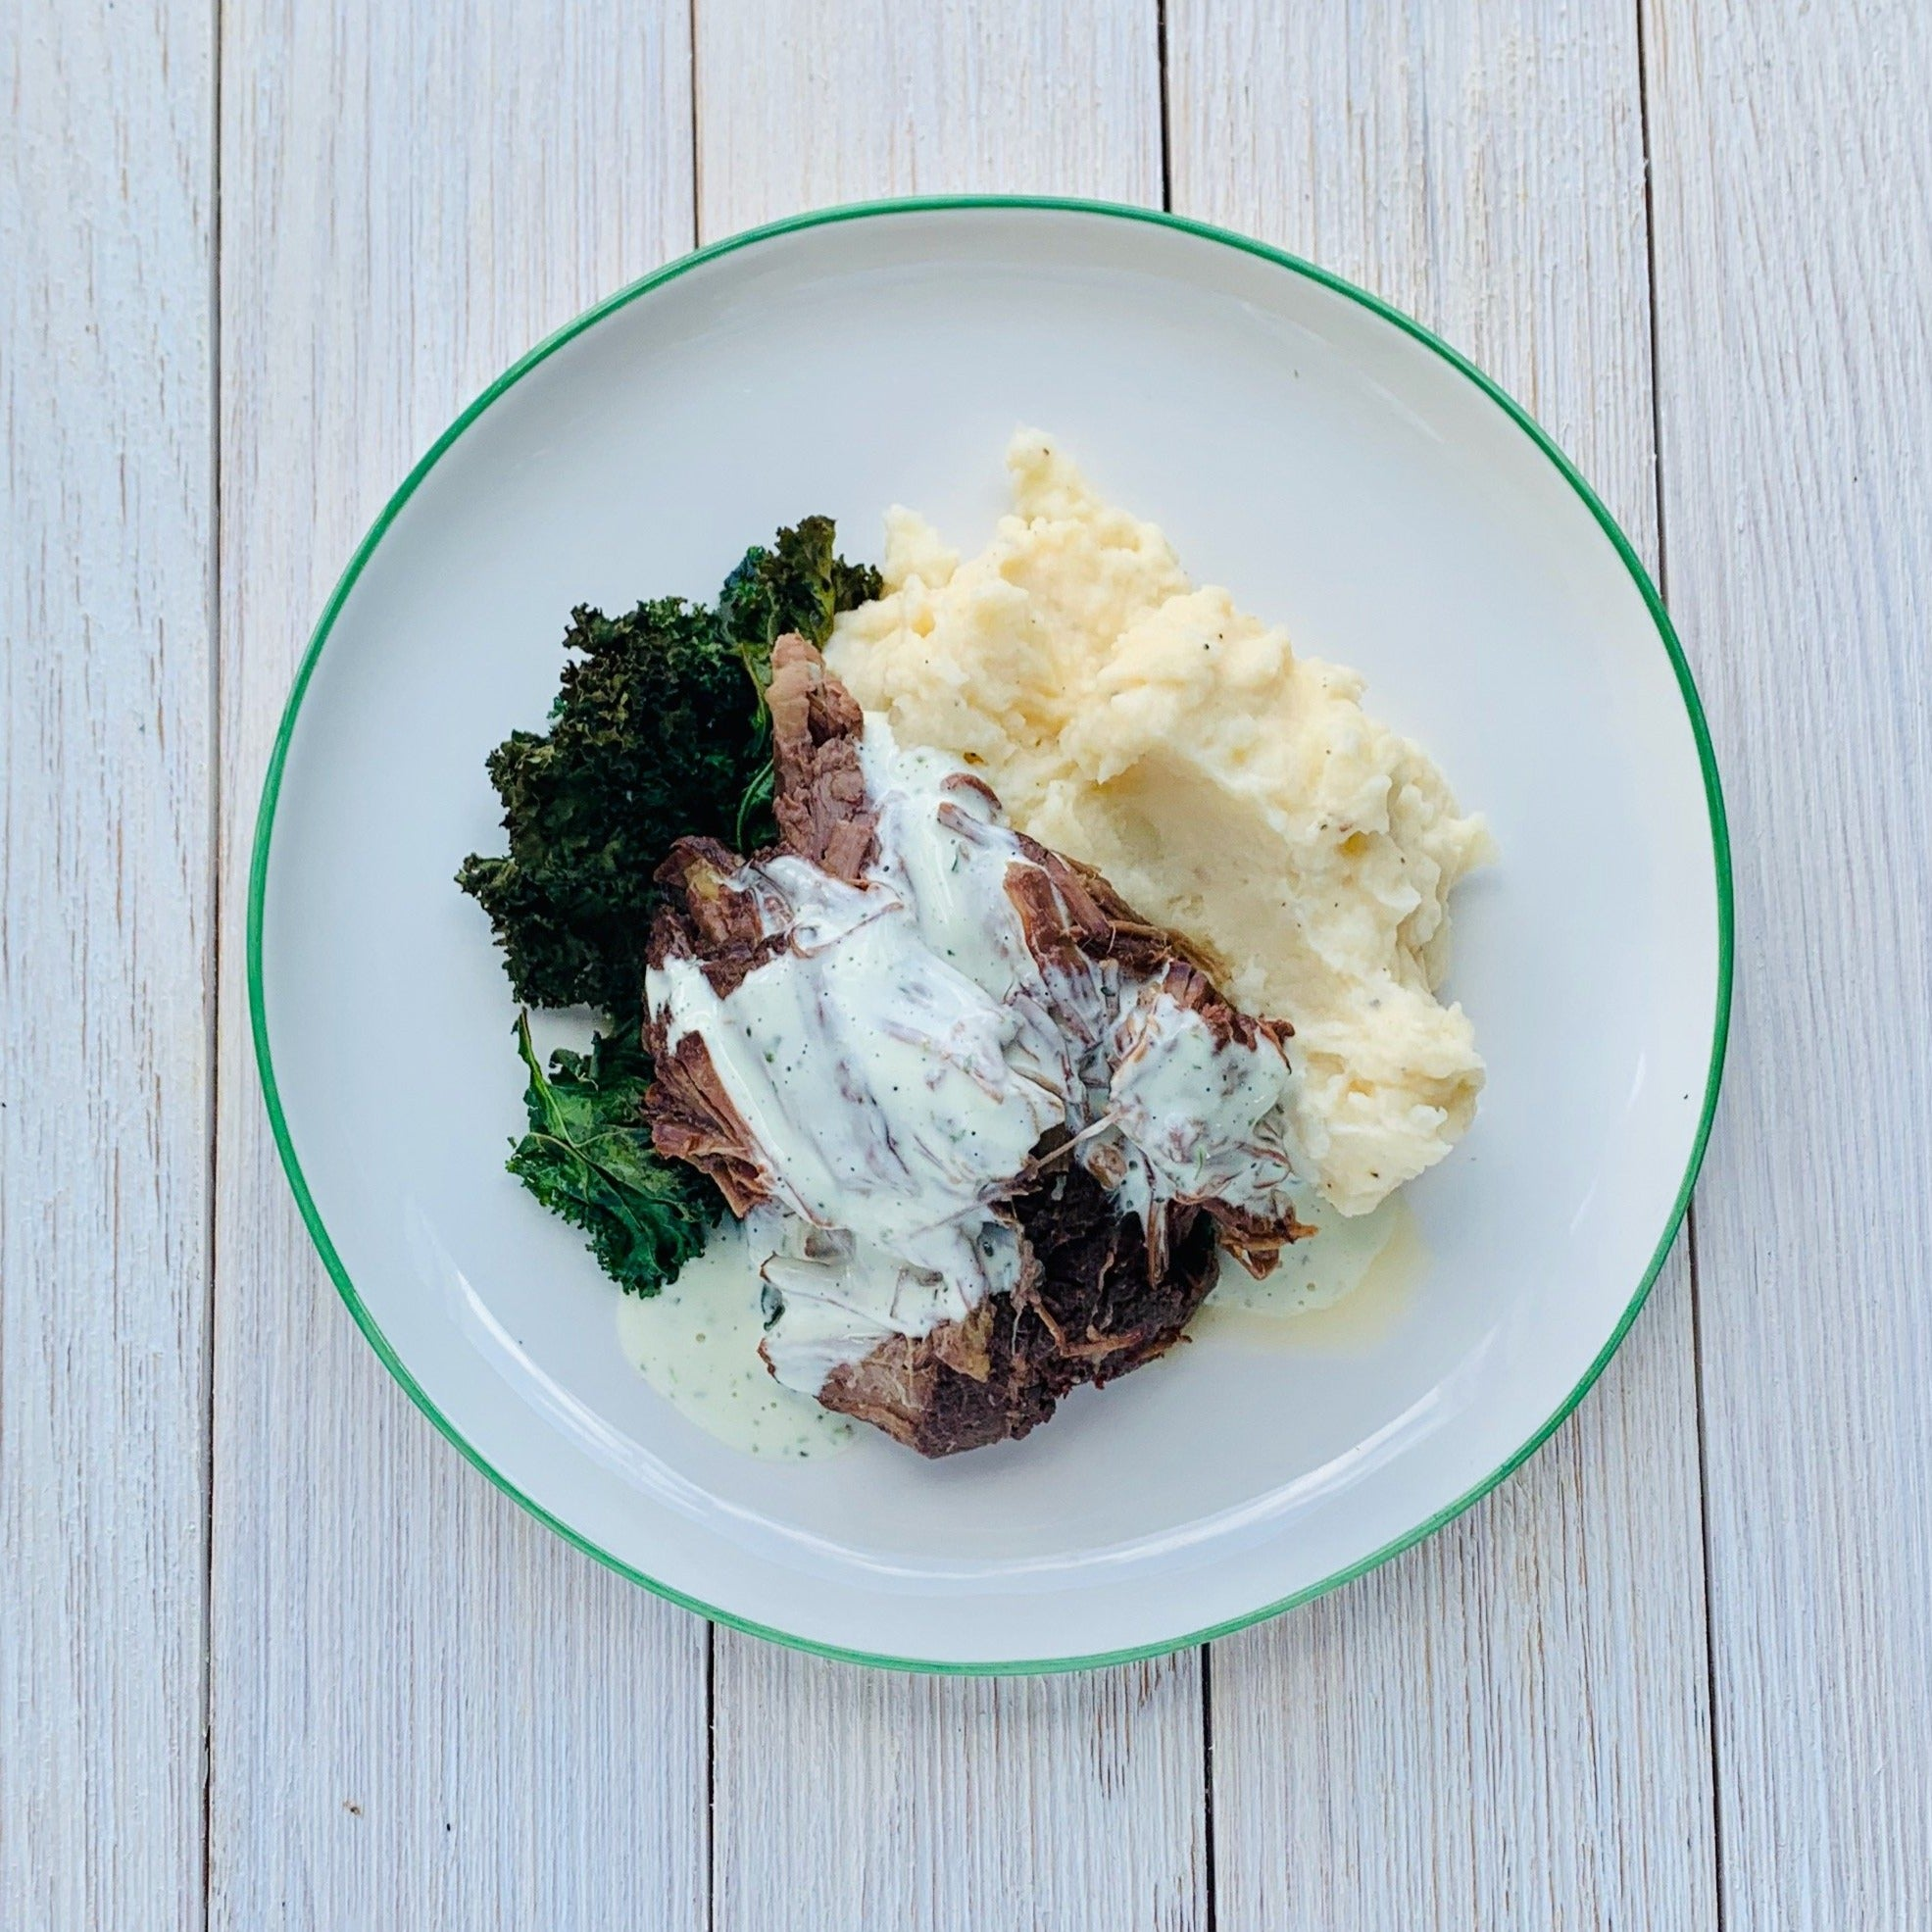 Braised Beef with Bearnaise Sauce, Toasted Kale & Garlic-Cheddar Mashed Potatoes (GF)